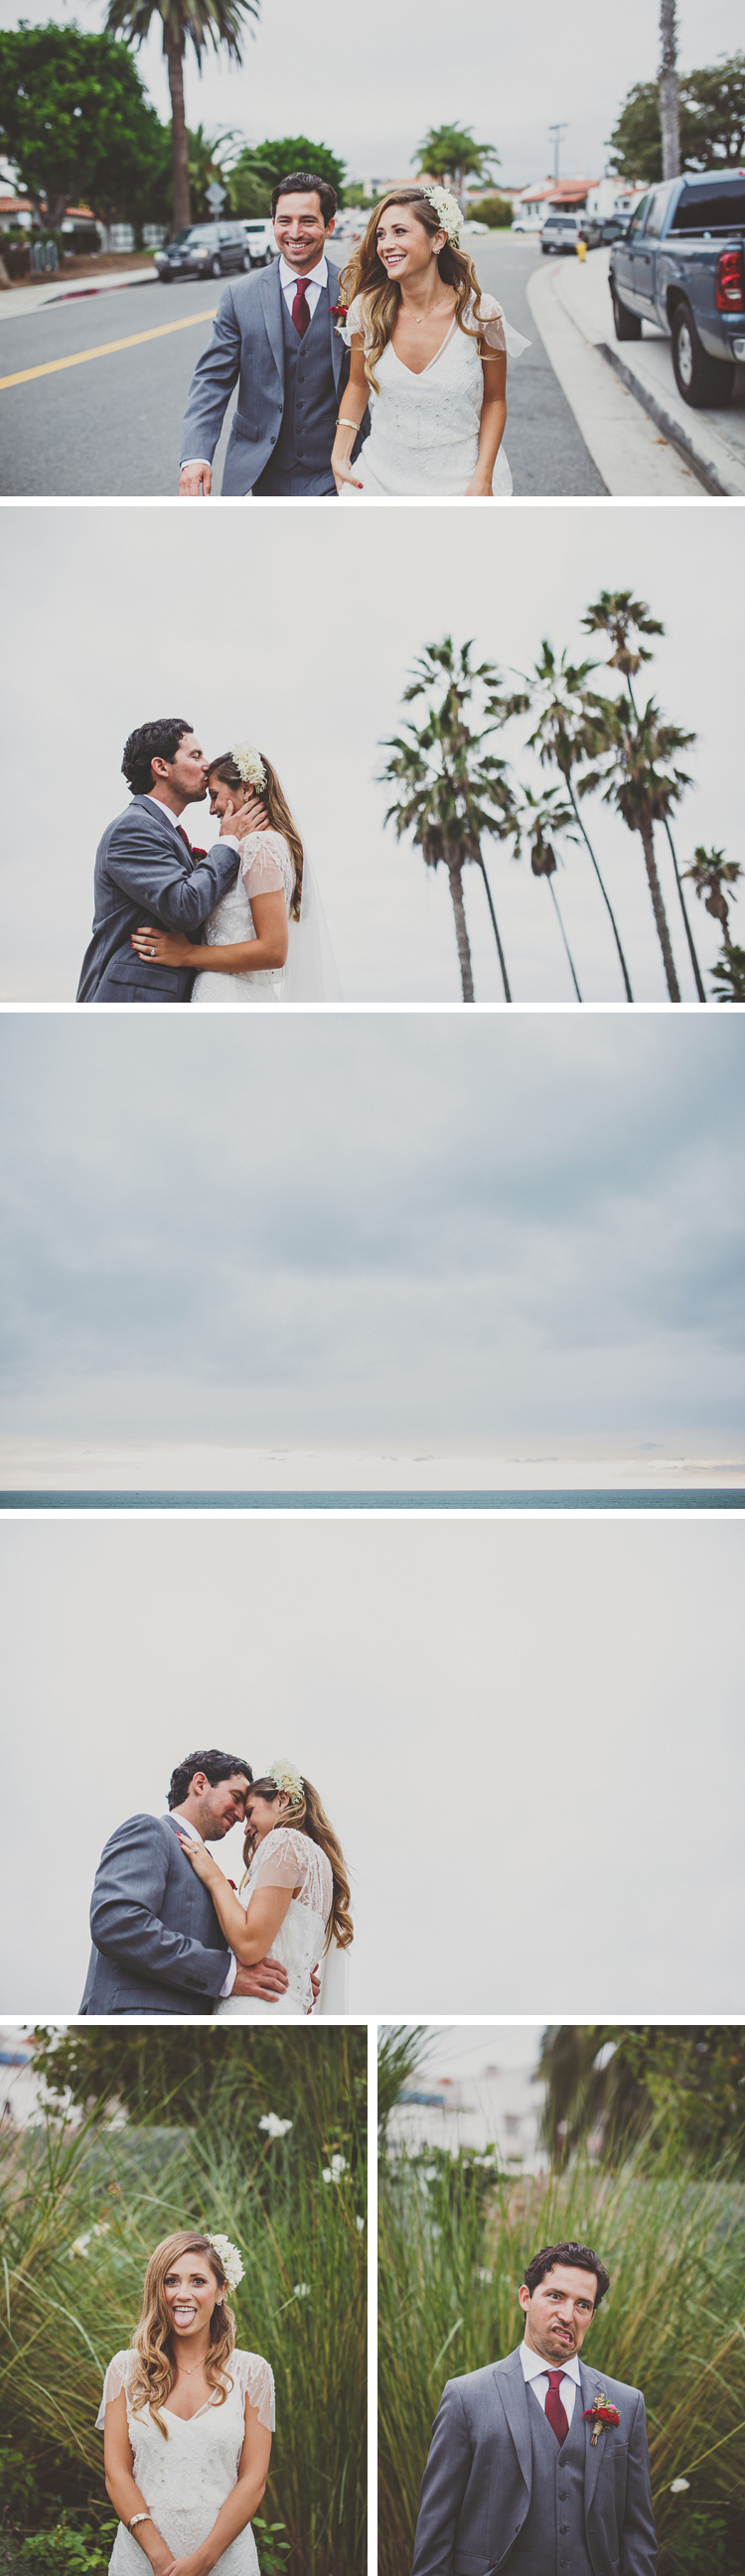 The Casino San Clemente Wedding Photos